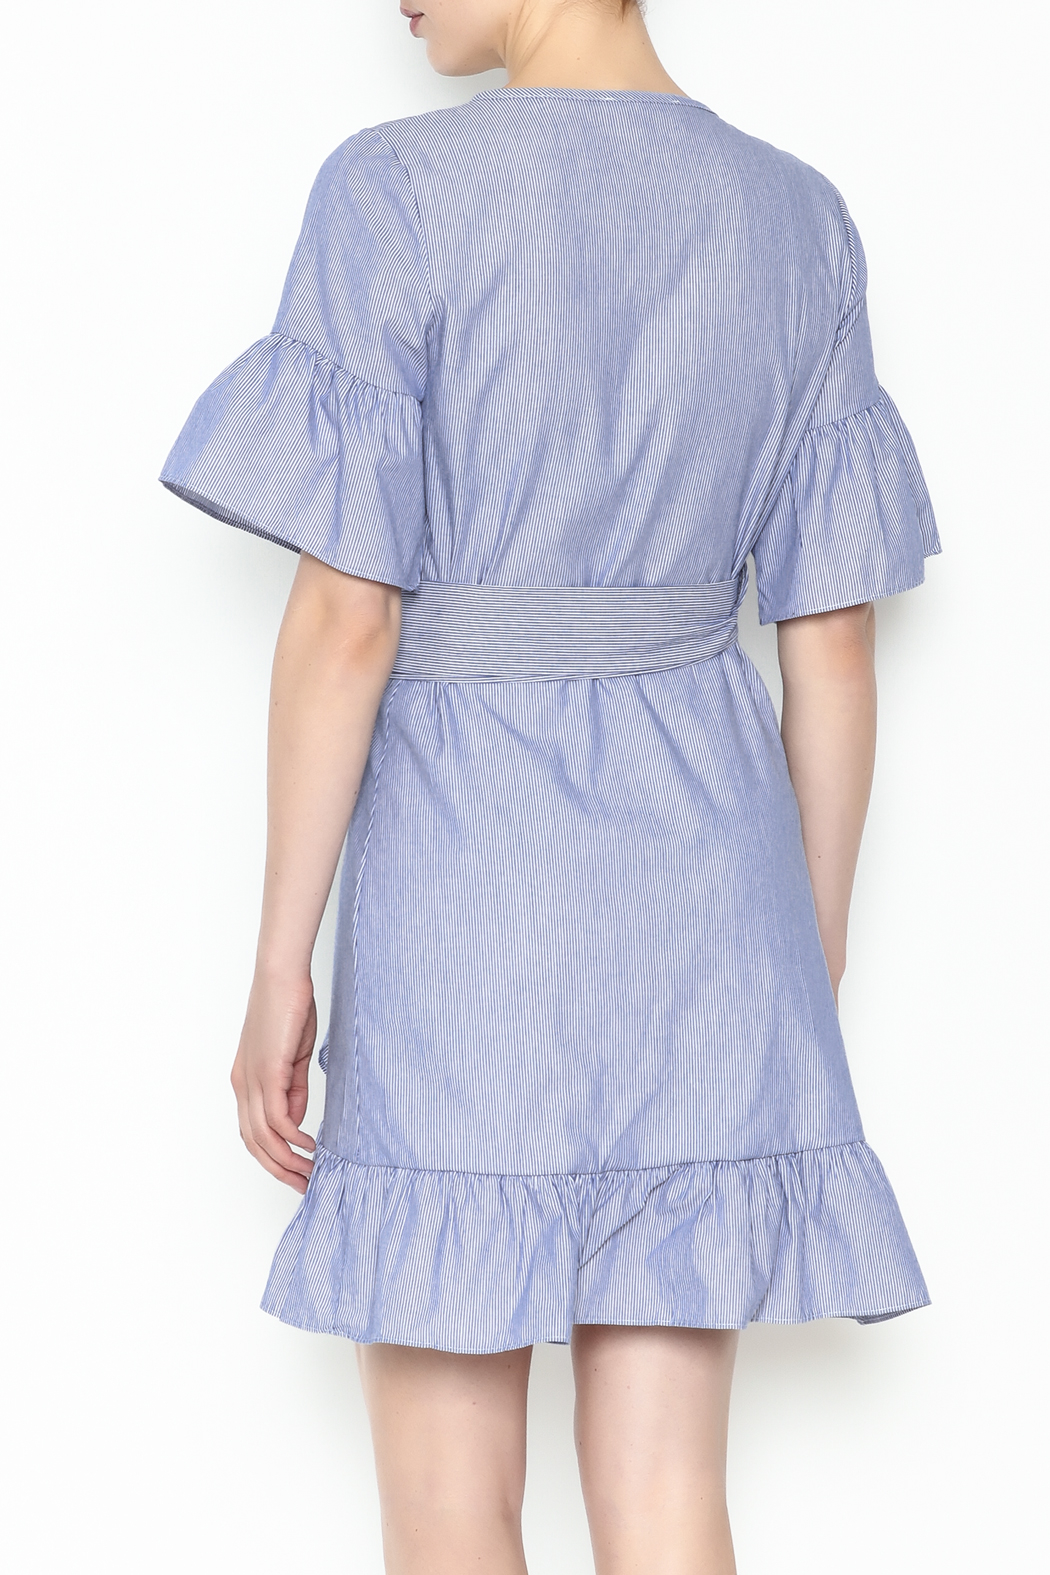 Newbury Kustom Ruffle Wrap Dress - Back Cropped Image